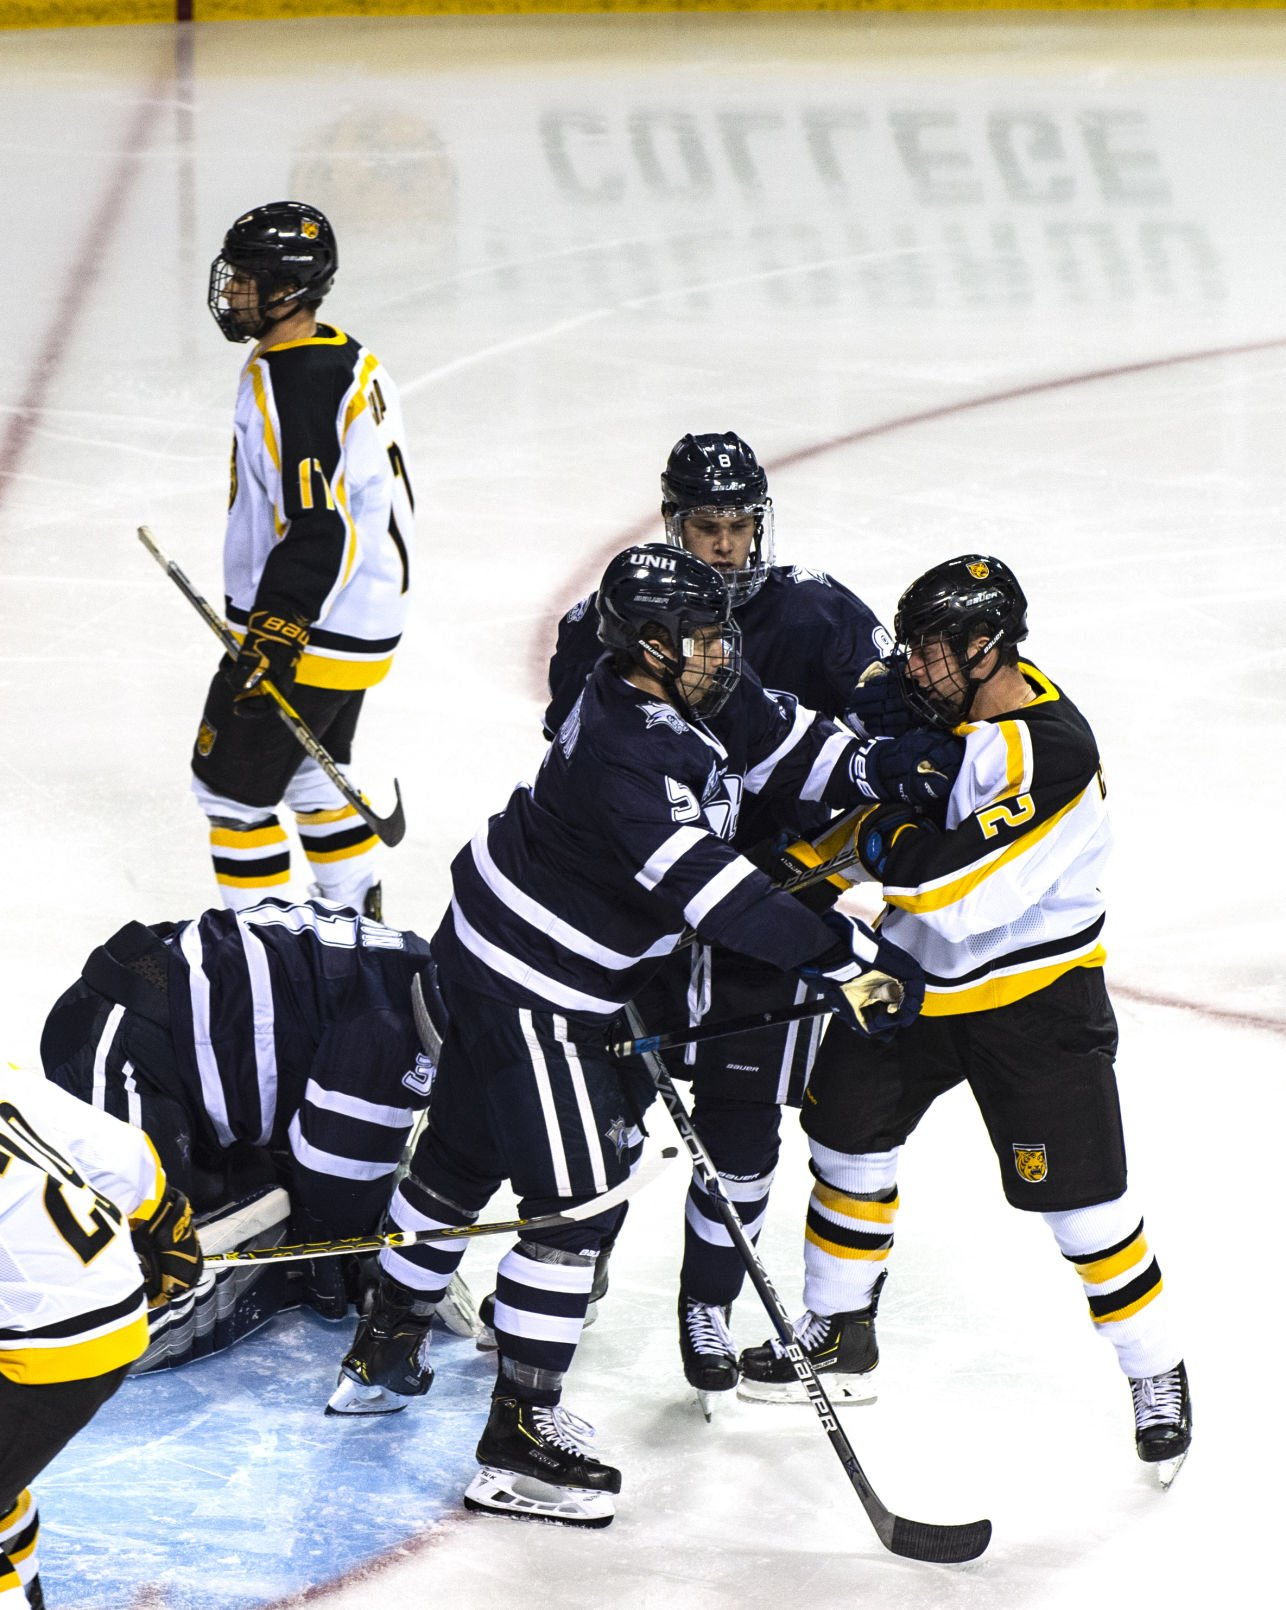 NCHC: Colorado College Hockey 'exhaled' Too Deeply In Loss To No. 2 St. Cloud State